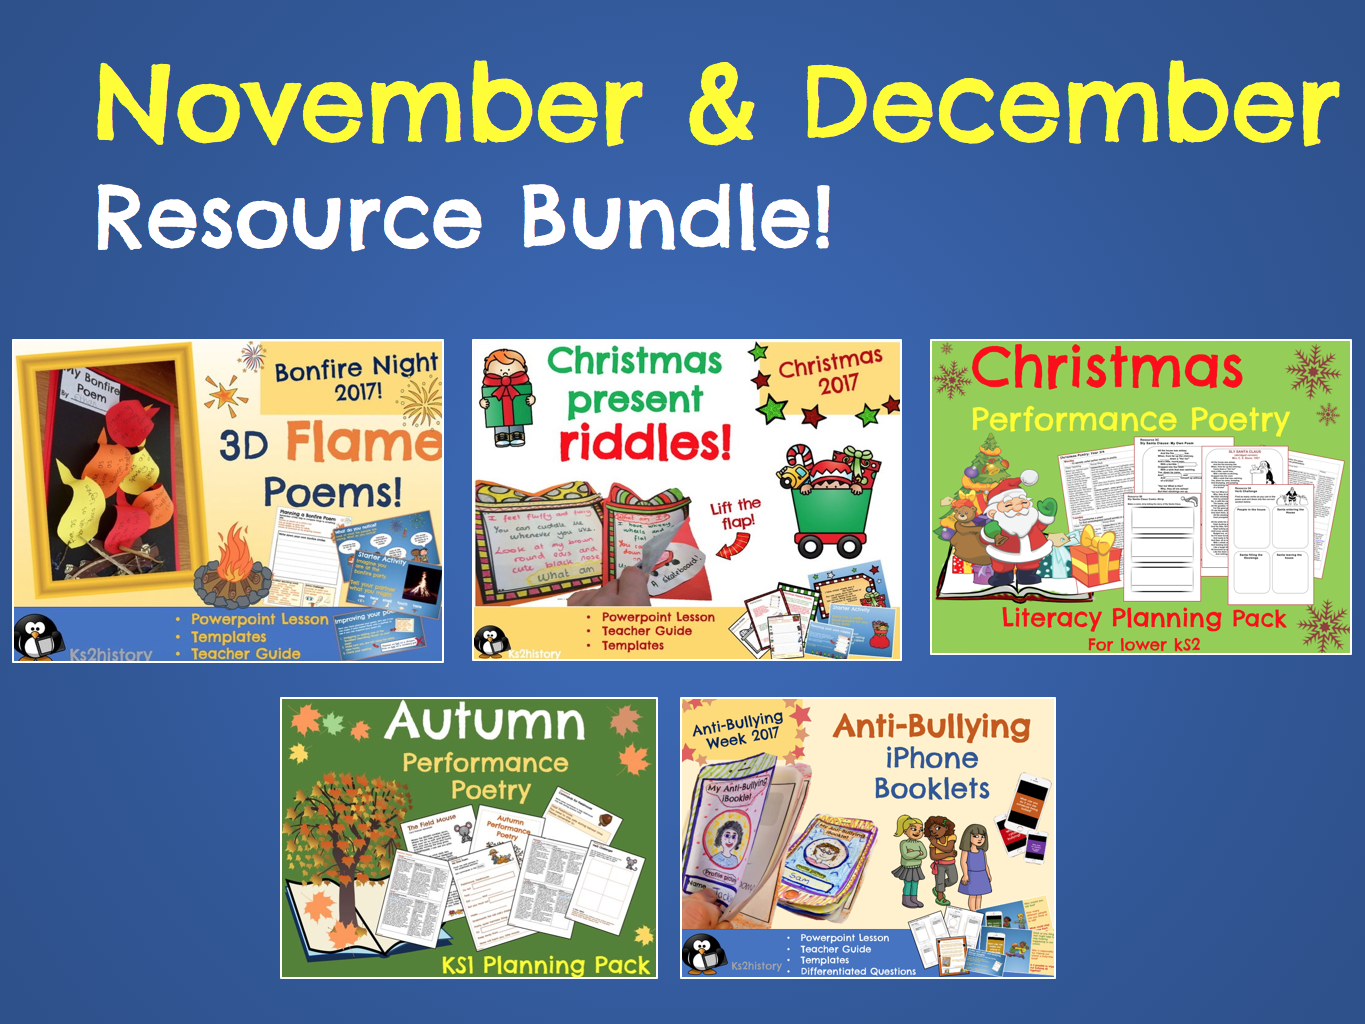 November & December Resource Bundle